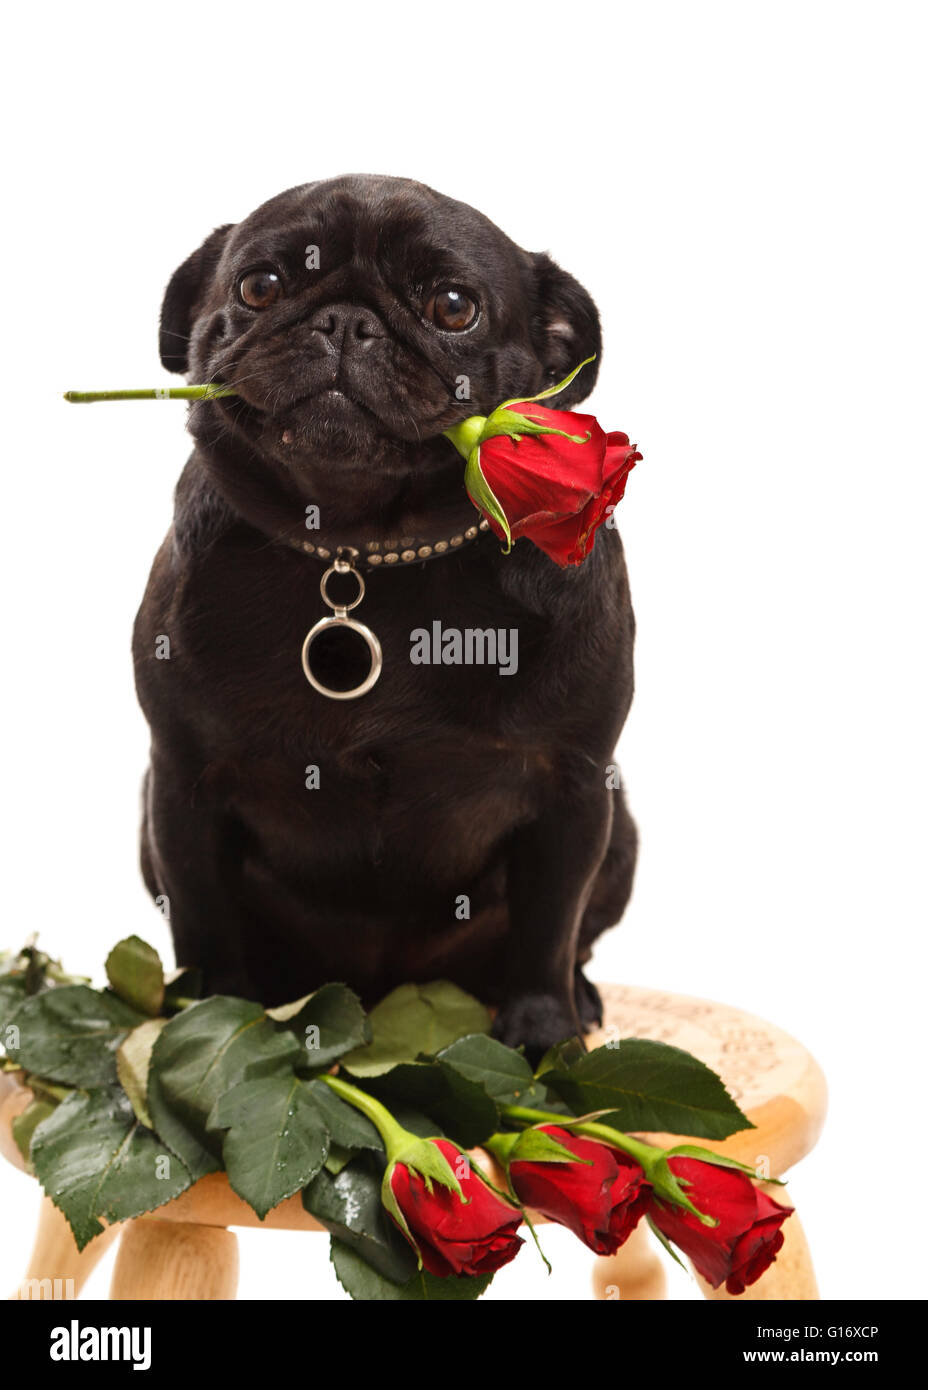 Small Black Cute Female Pug Puppy Dog Holding Red Rose